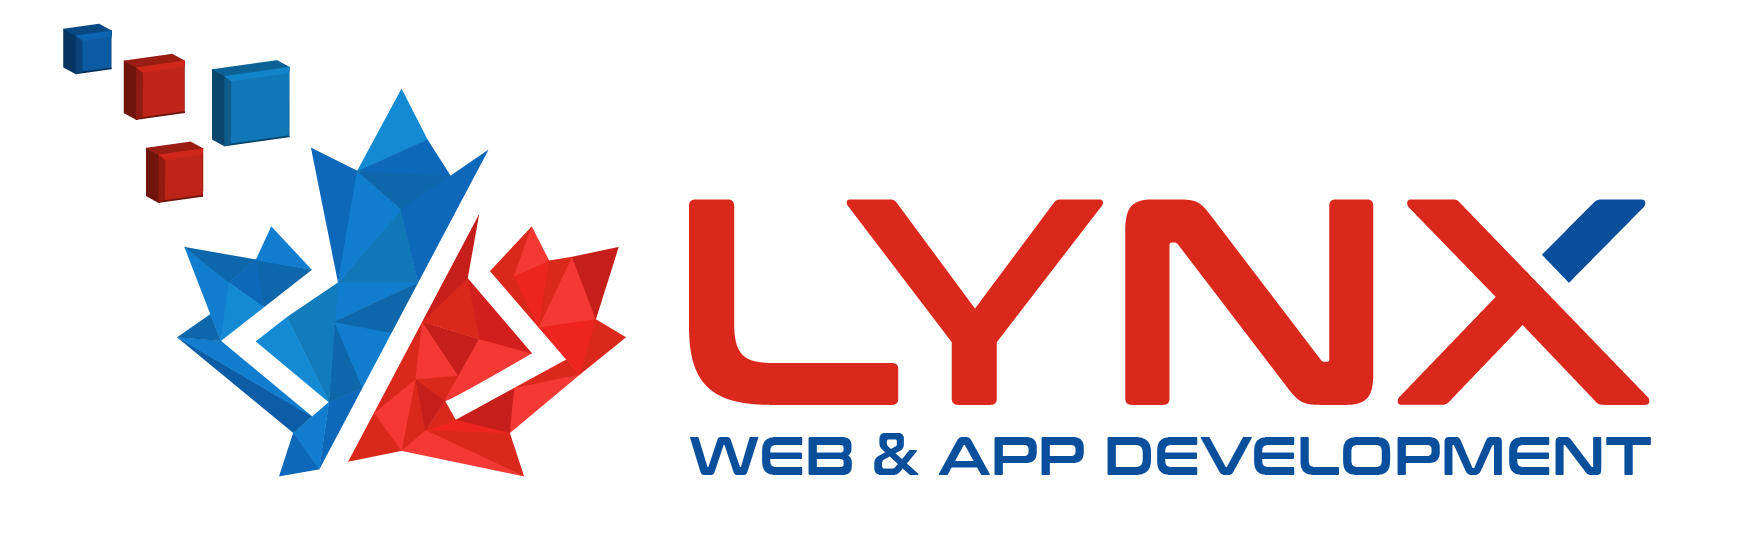 Lynx Web & App Development